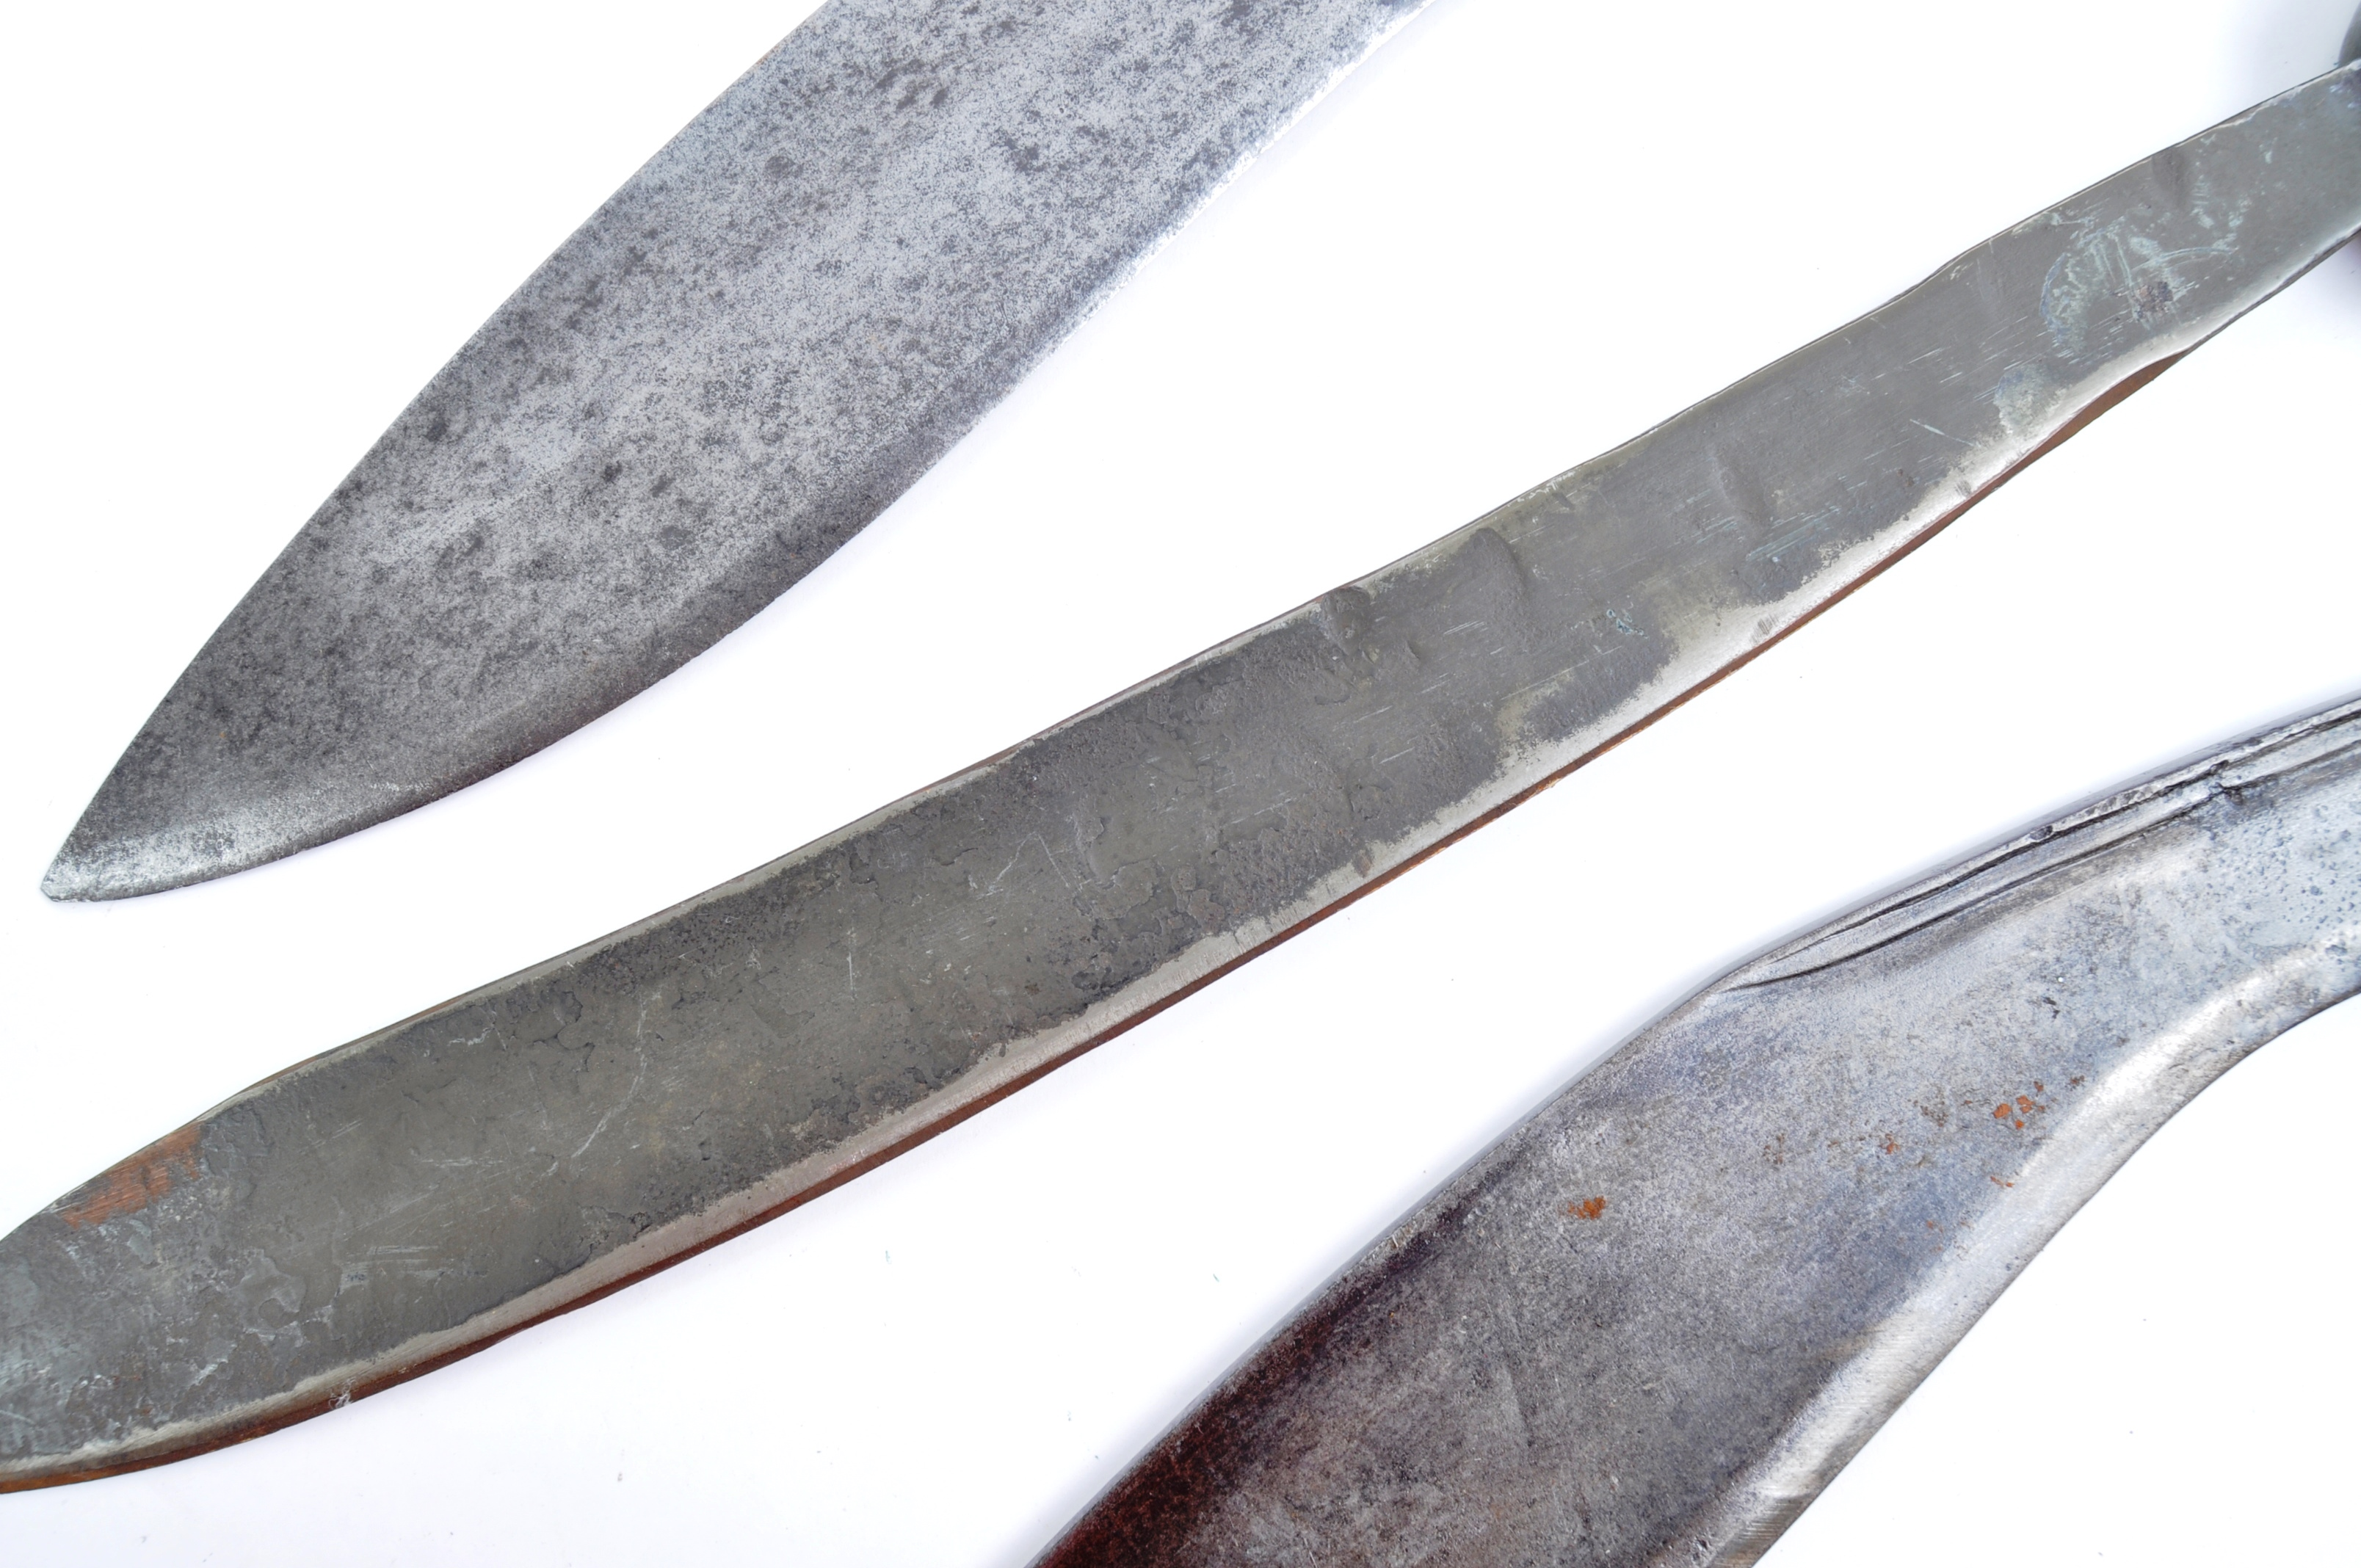 EDGED WEAPONS - COLLECTION OF KUKRI KNIVES / MACHETES - Image 3 of 11